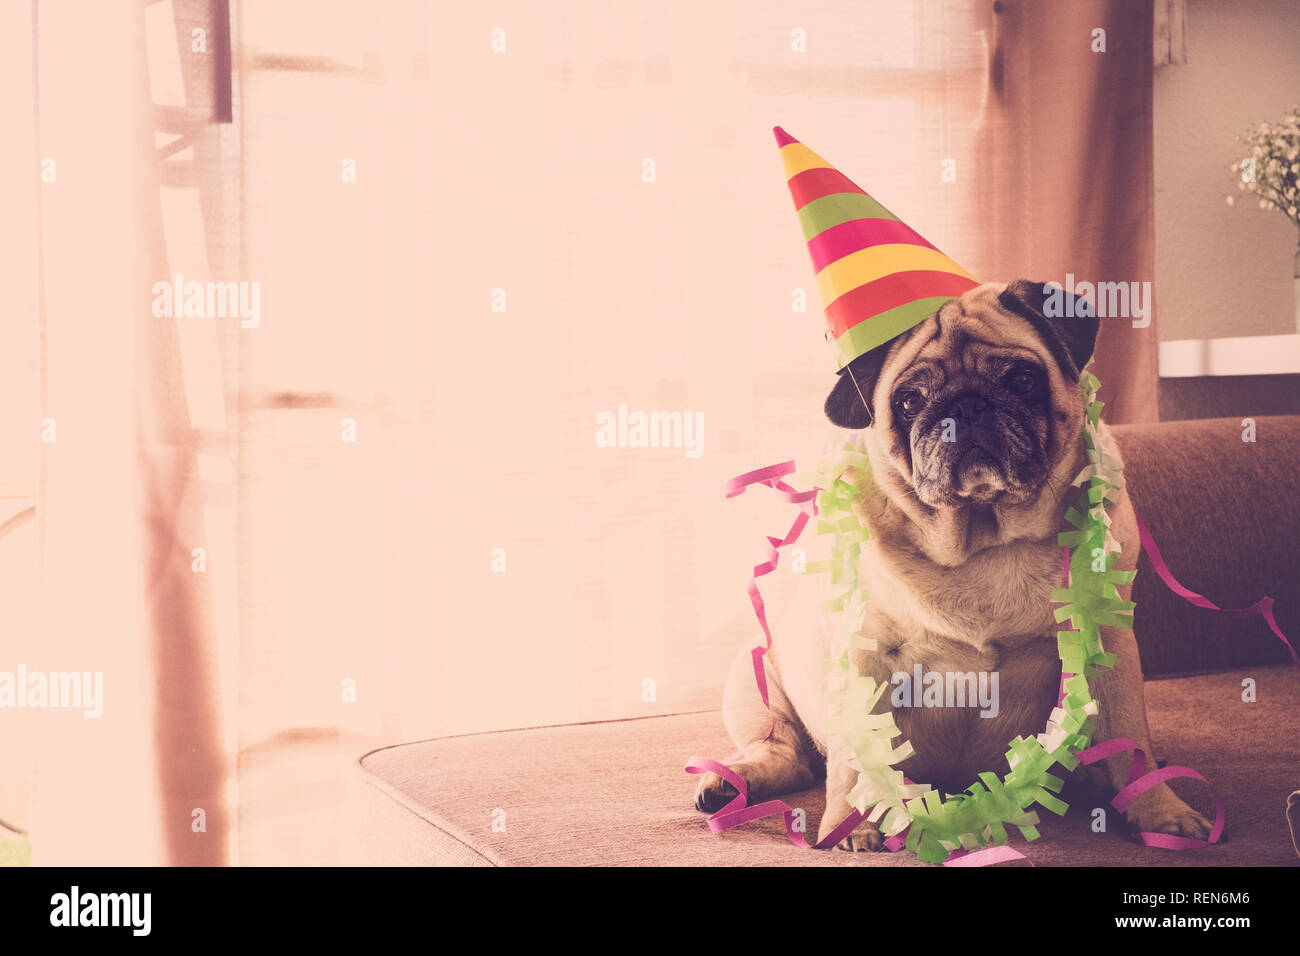 Carnival funny concept birthday celenration new year christmas with crazy pug dog with coloured event style hat - Stock Image